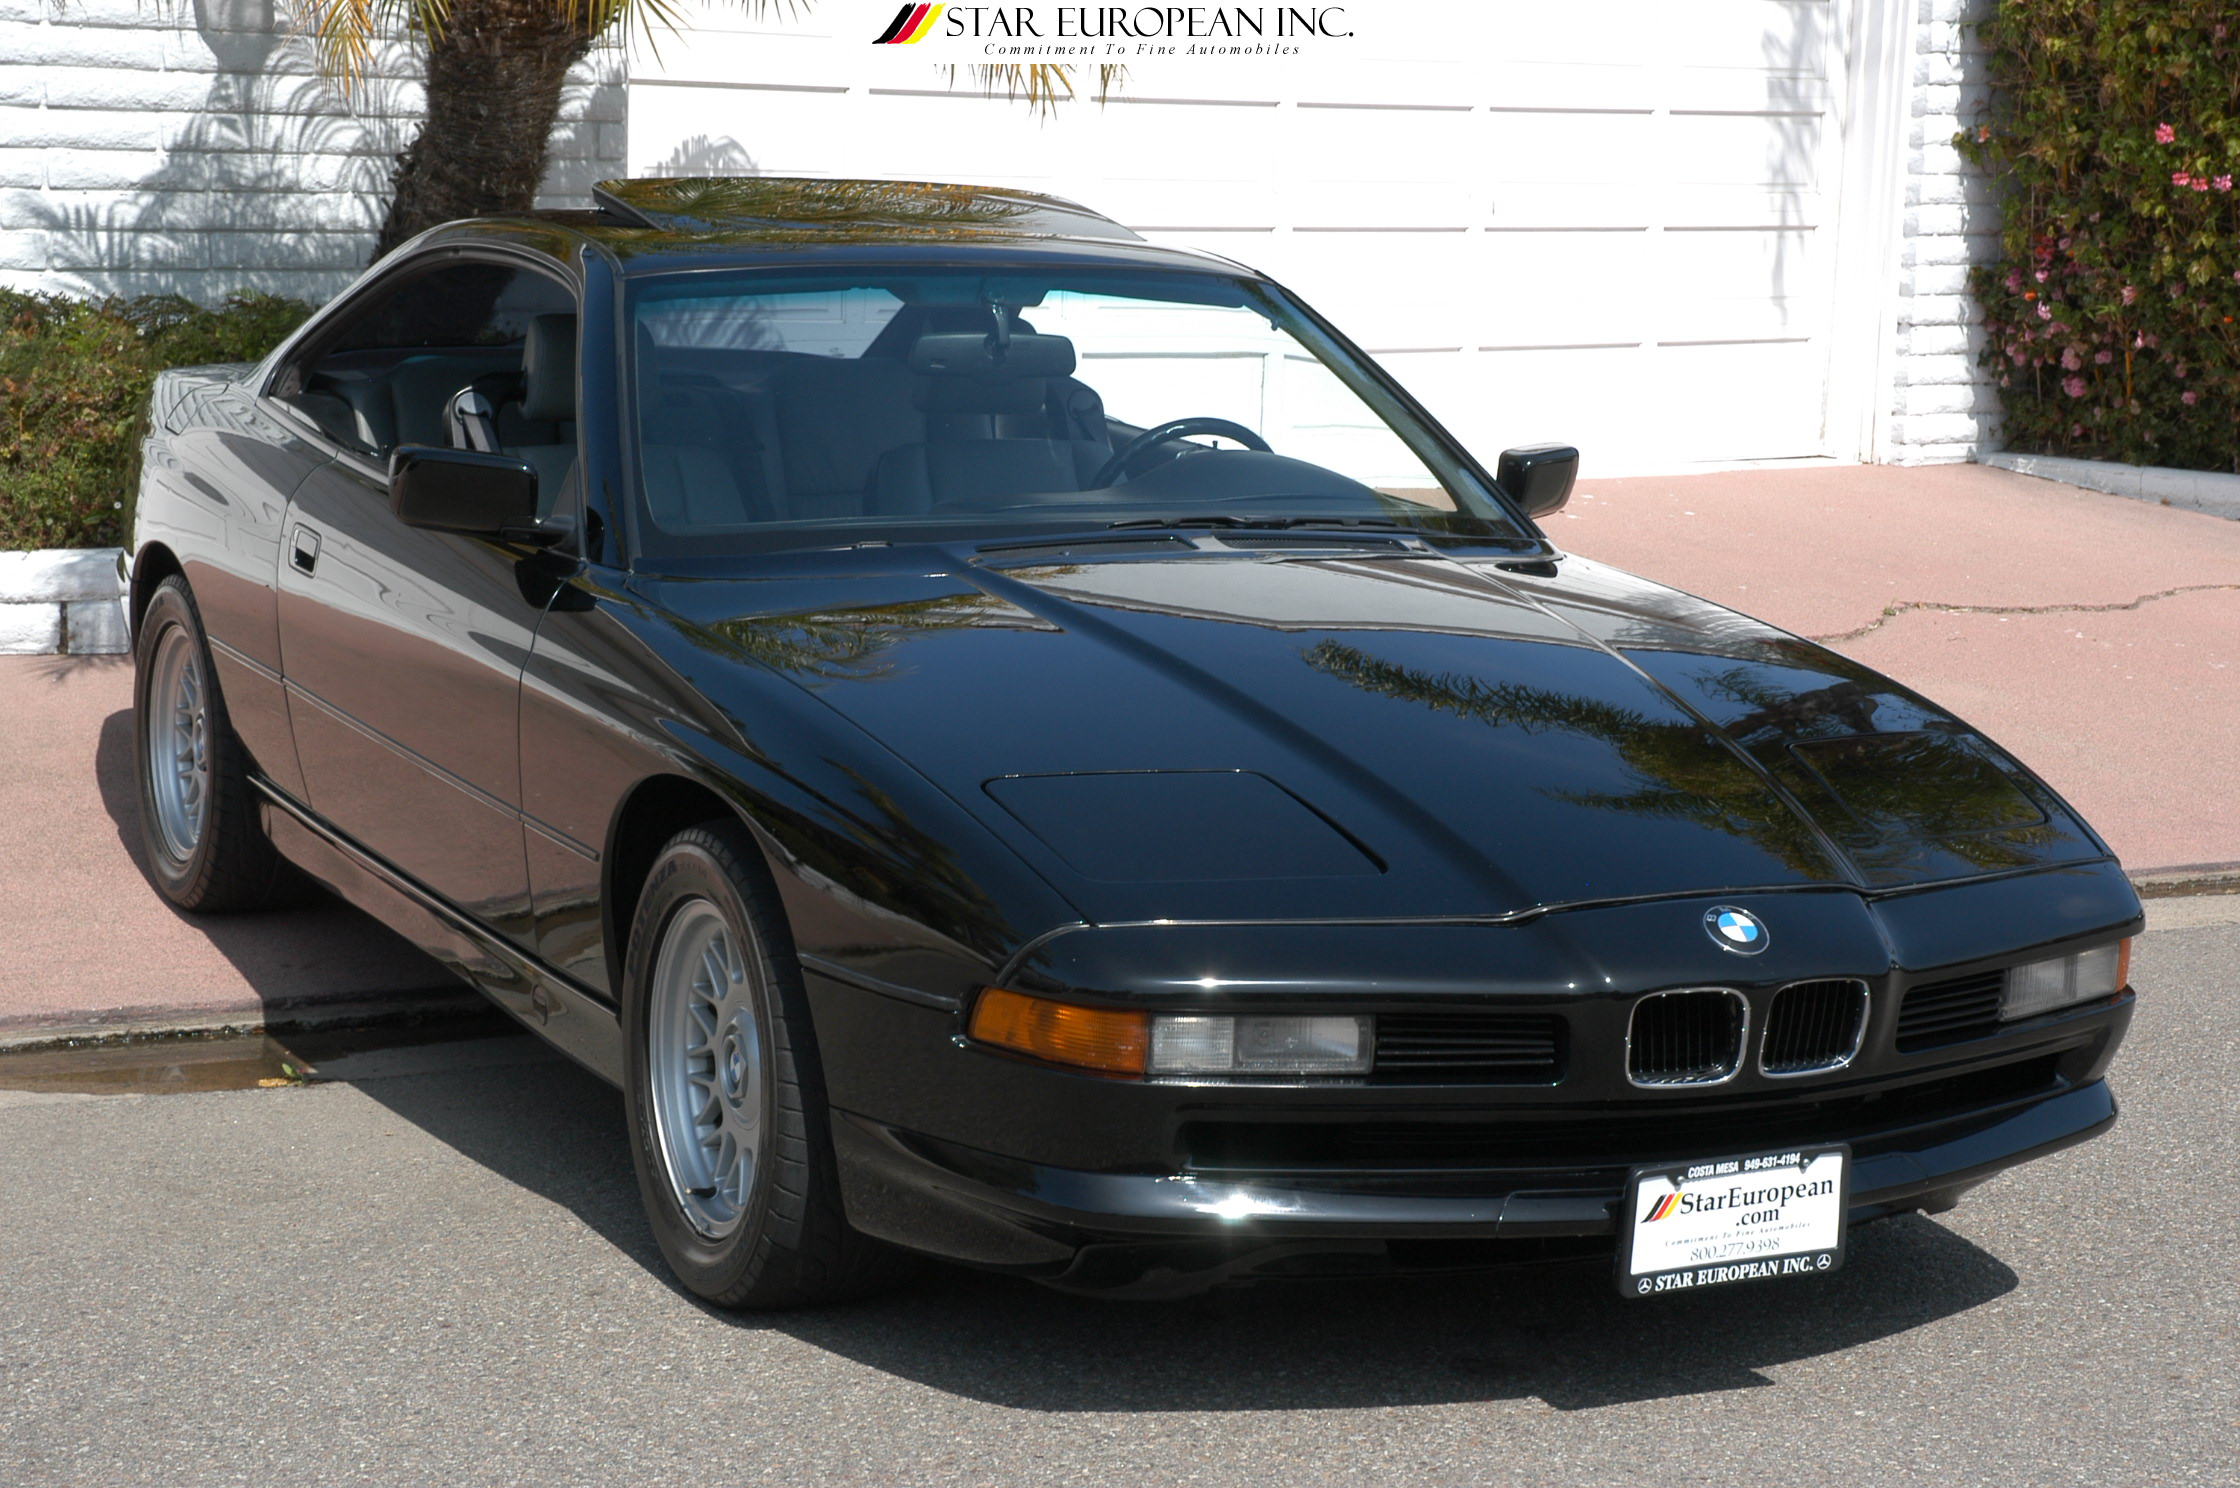 black bmw 850i | Car Photos Catalog 2019